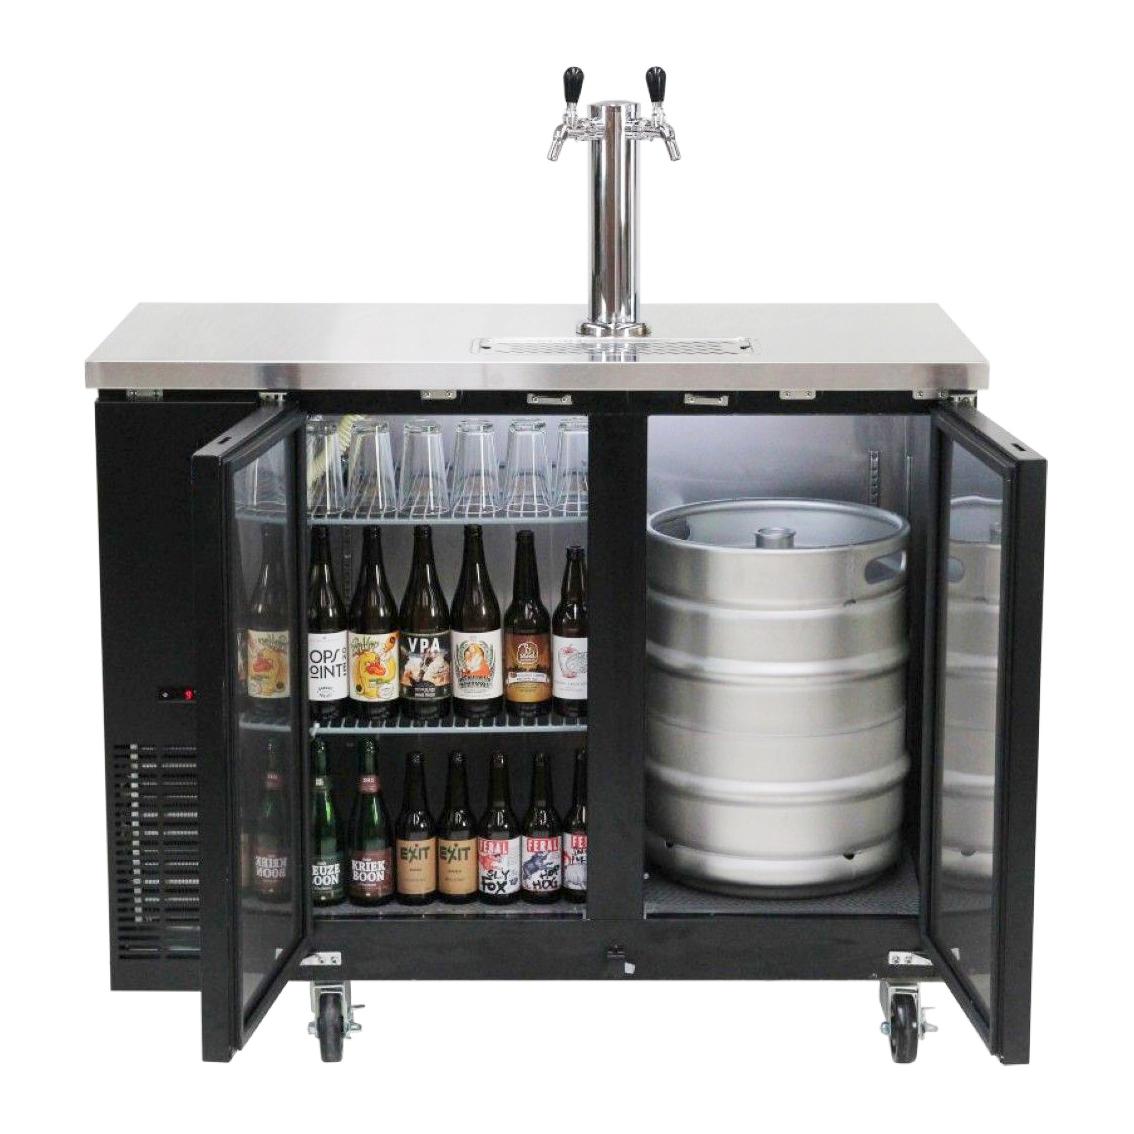 Kegmaster Grand Deluxe 125 - Dimensions: (W*D*H) 1240 x 620 x 920 (mm) Height including castors 1035 mmcommercial grade refrigerator with holding capacity = 8 x 19.5 litre kegs or 2 x 50 litre keg$1350 ex gst and requires additional tap system below to be added for full functioning setup$12.50 ex gst per week rental billed monthly